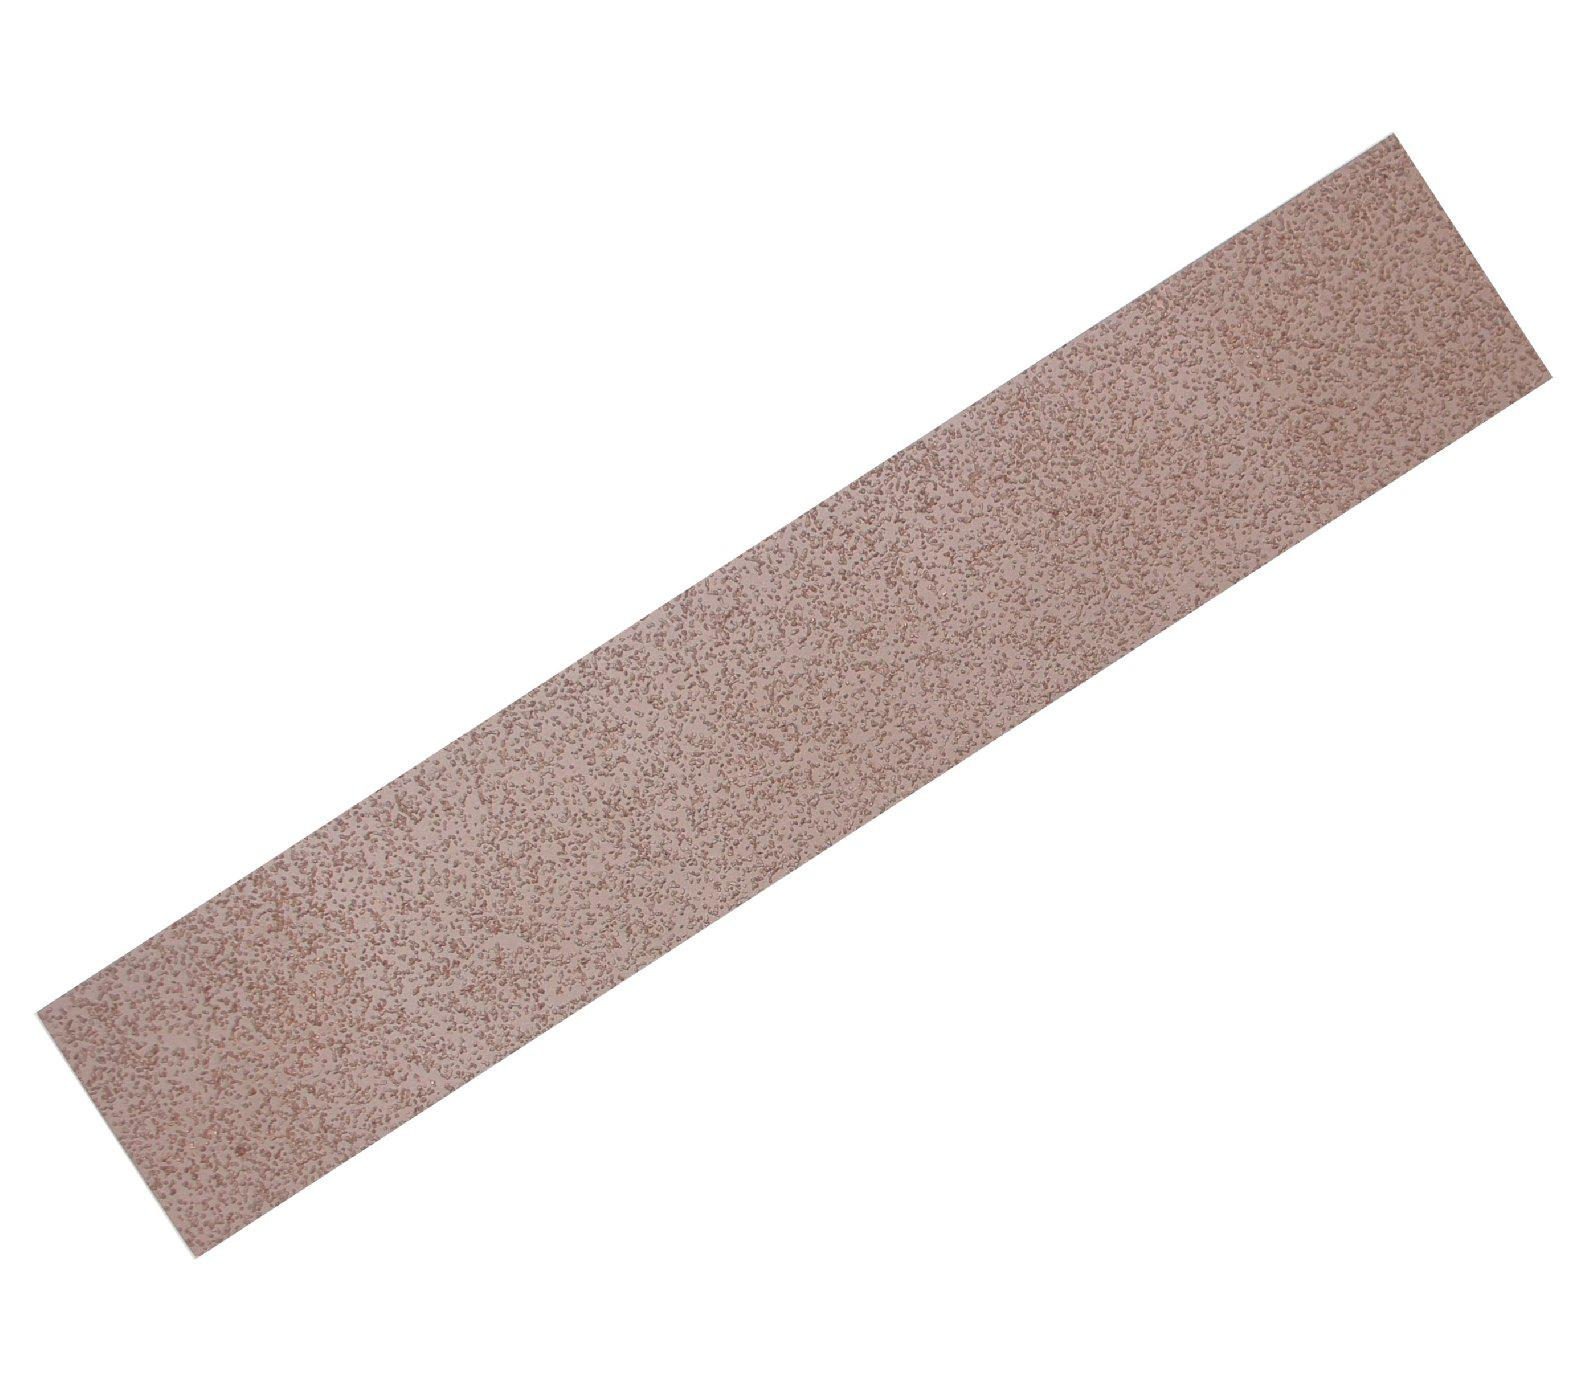 Flexible File 280 x 51 mm COARSE